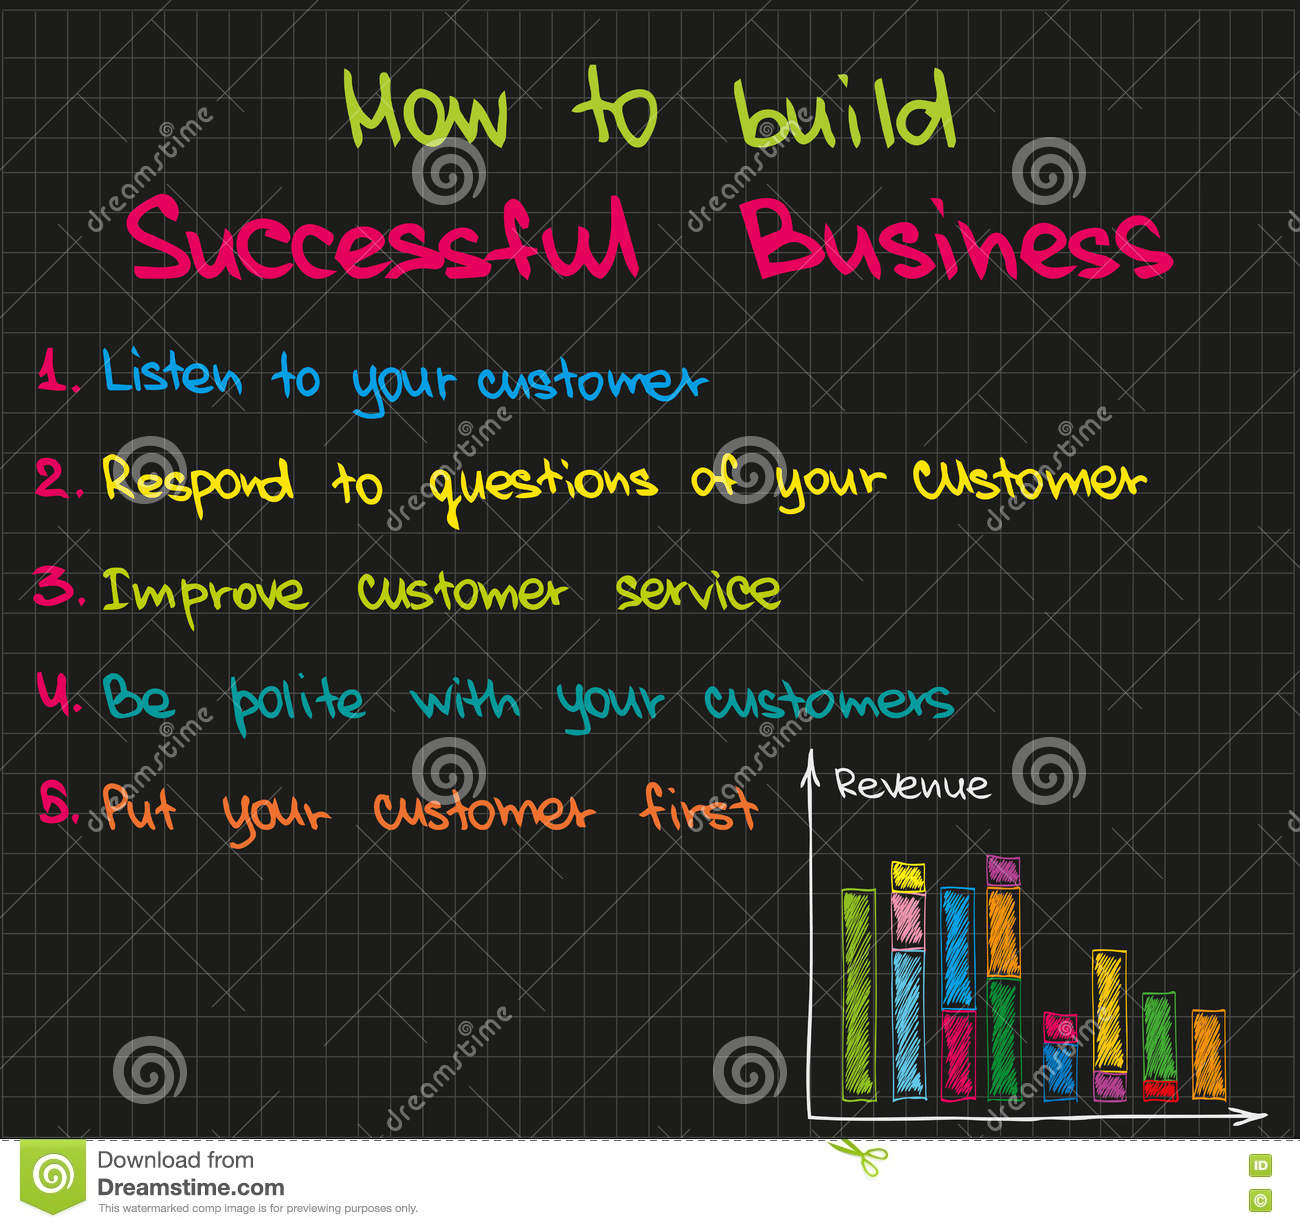 Discussion on this topic: How to Run a Business to Business , how-to-run-a-business-to-business/